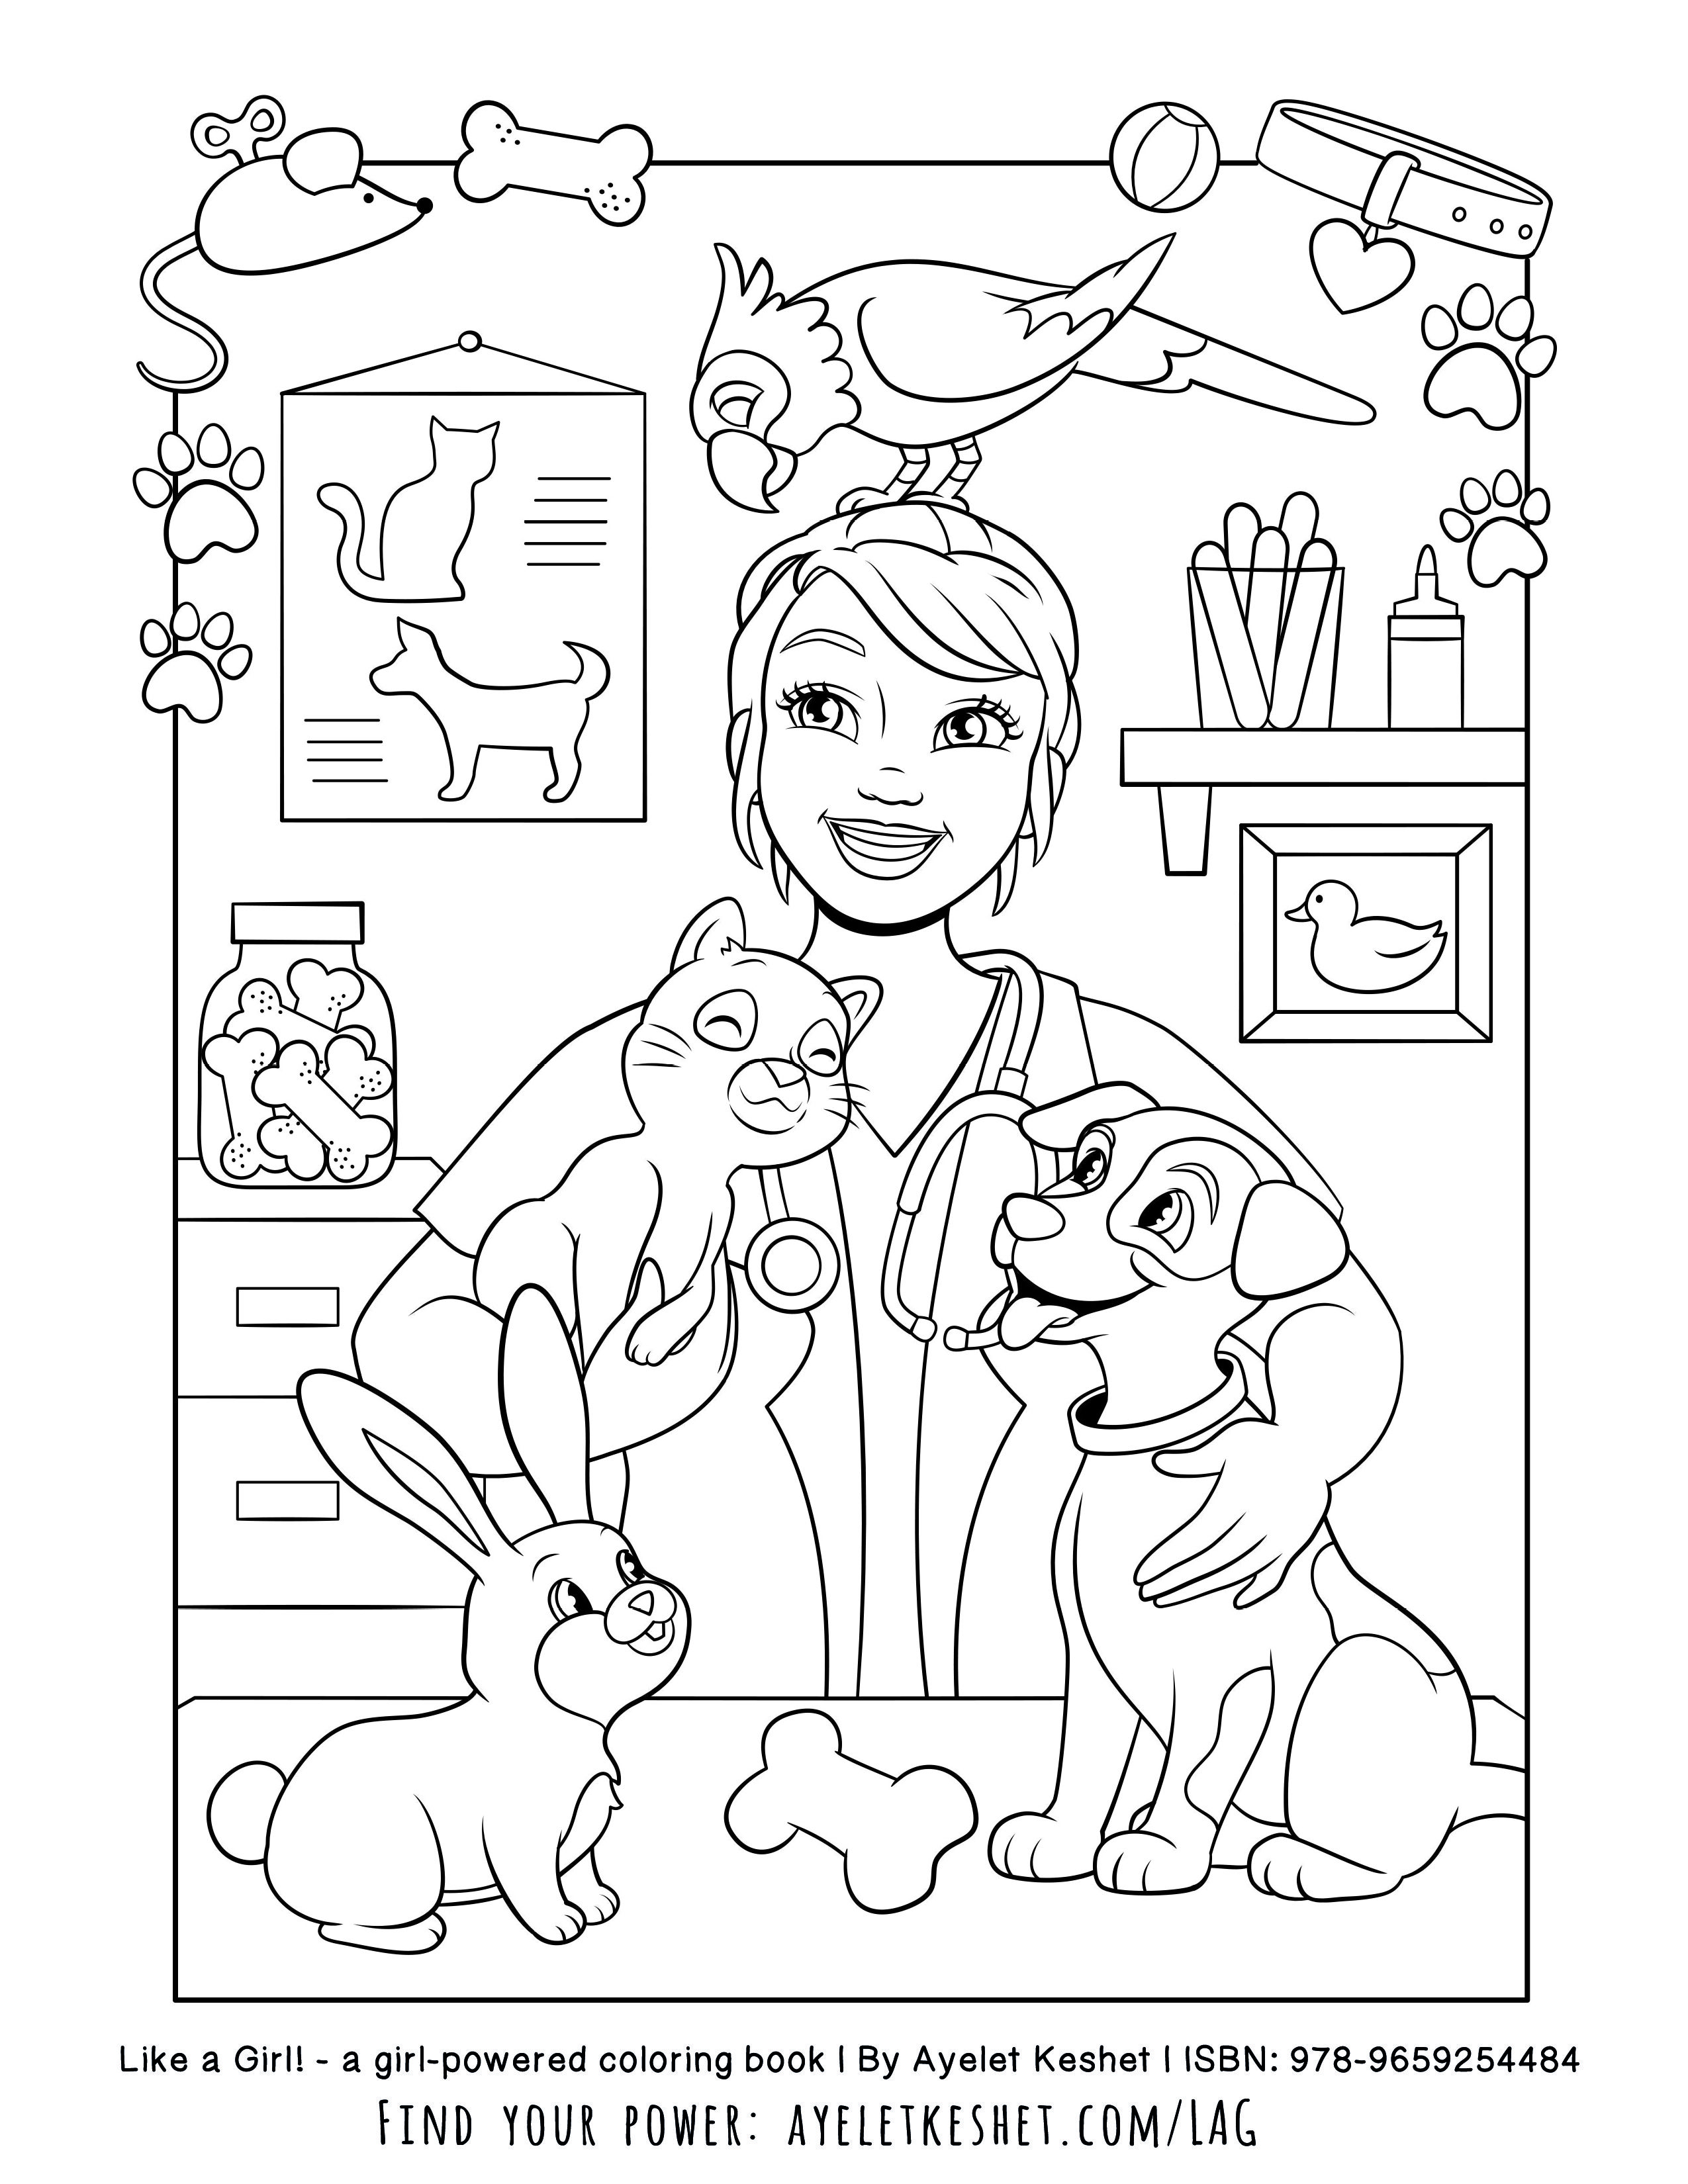 Girl Power Free Printables Of The Coloring Book Like A Girl Coloring Books Preschool Coloring Pages Coloring Pages For Girls